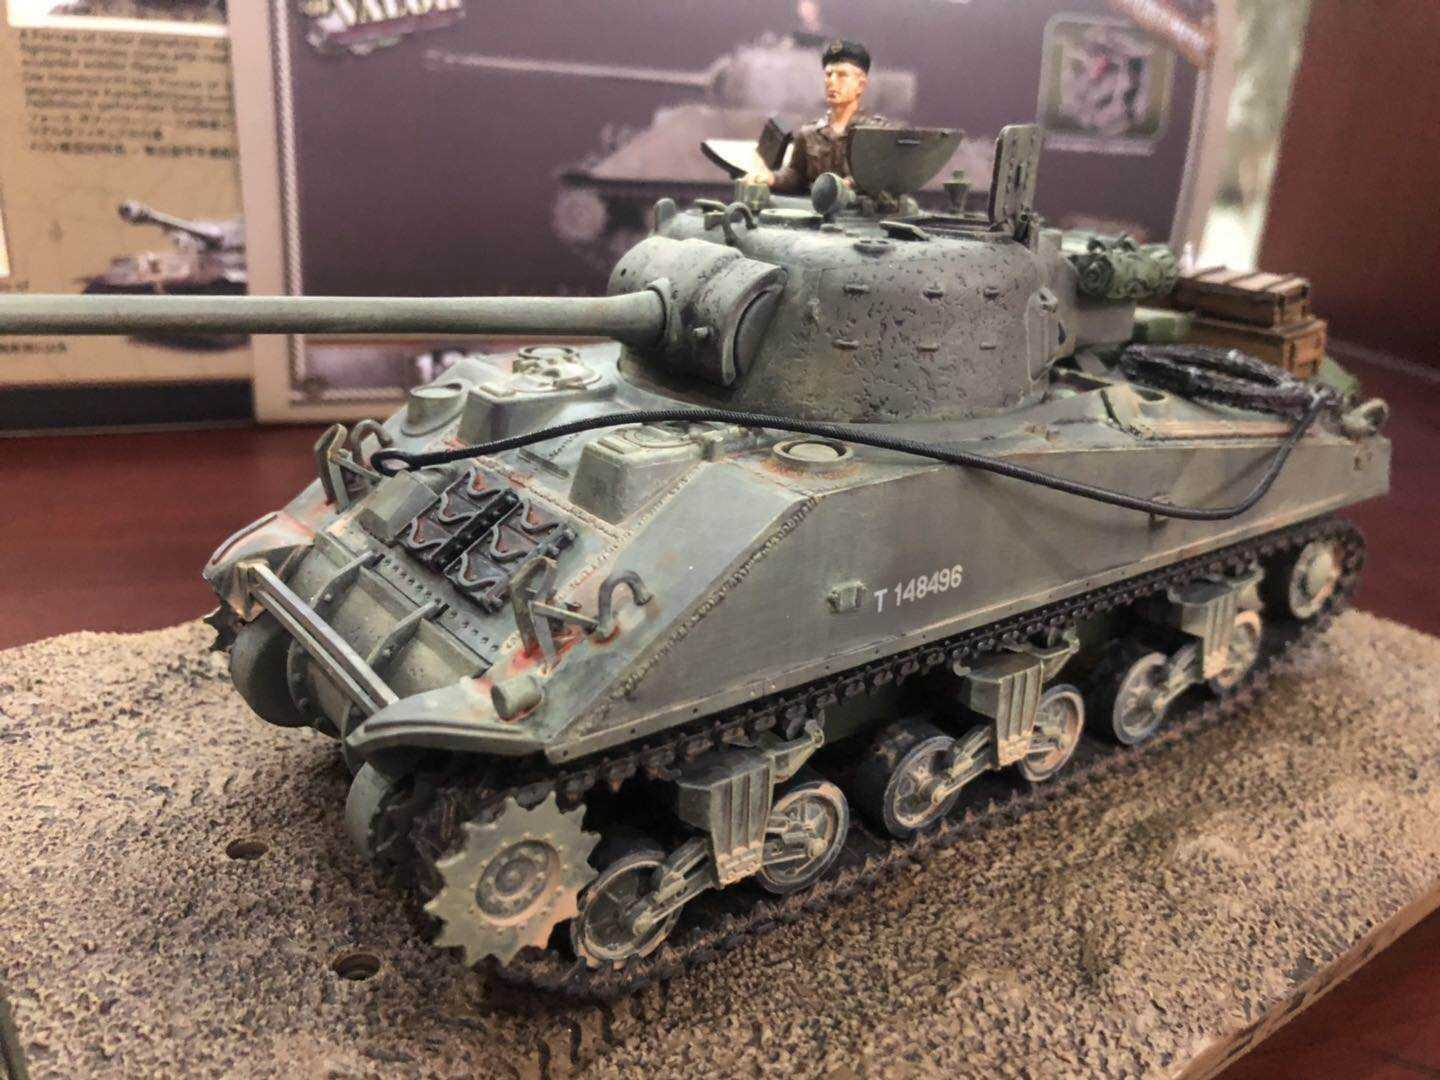 Forces of Valor 801036 A 1 32 Sherman Firefly avec équipage